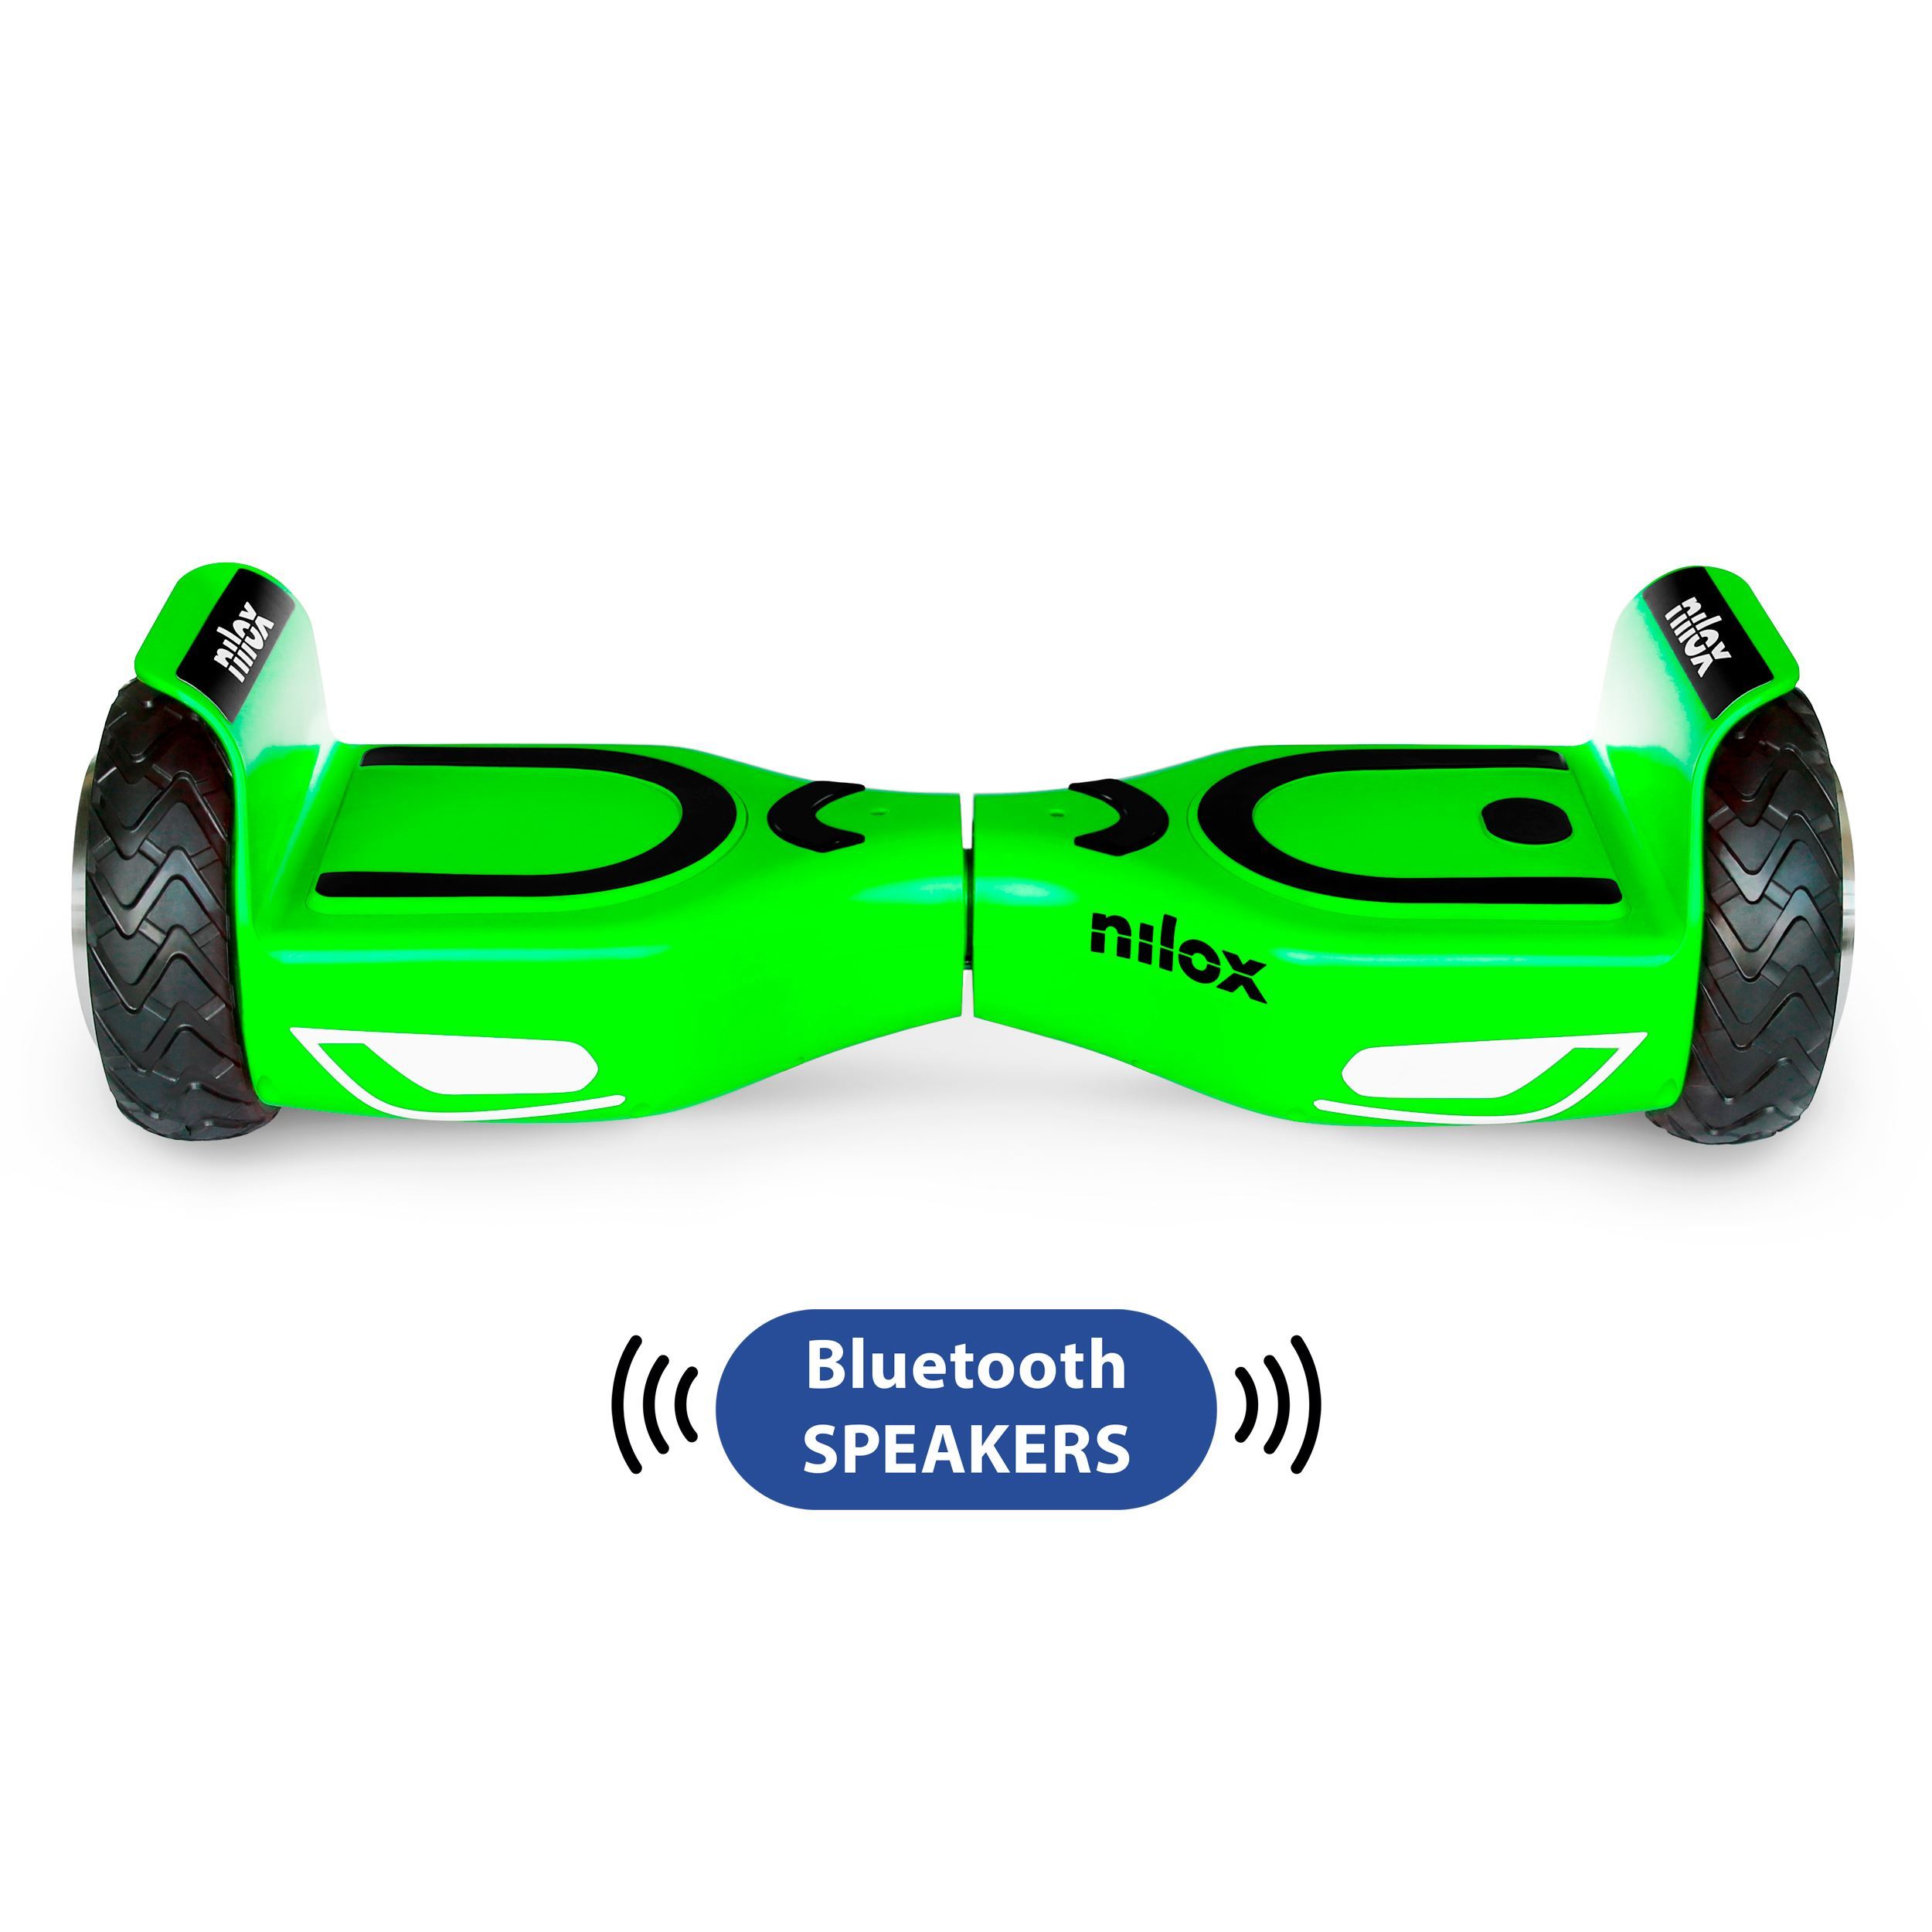 doc-2-hoverboard-plus-lime-green-30nxbk65bwn06-505305-hd.jpg